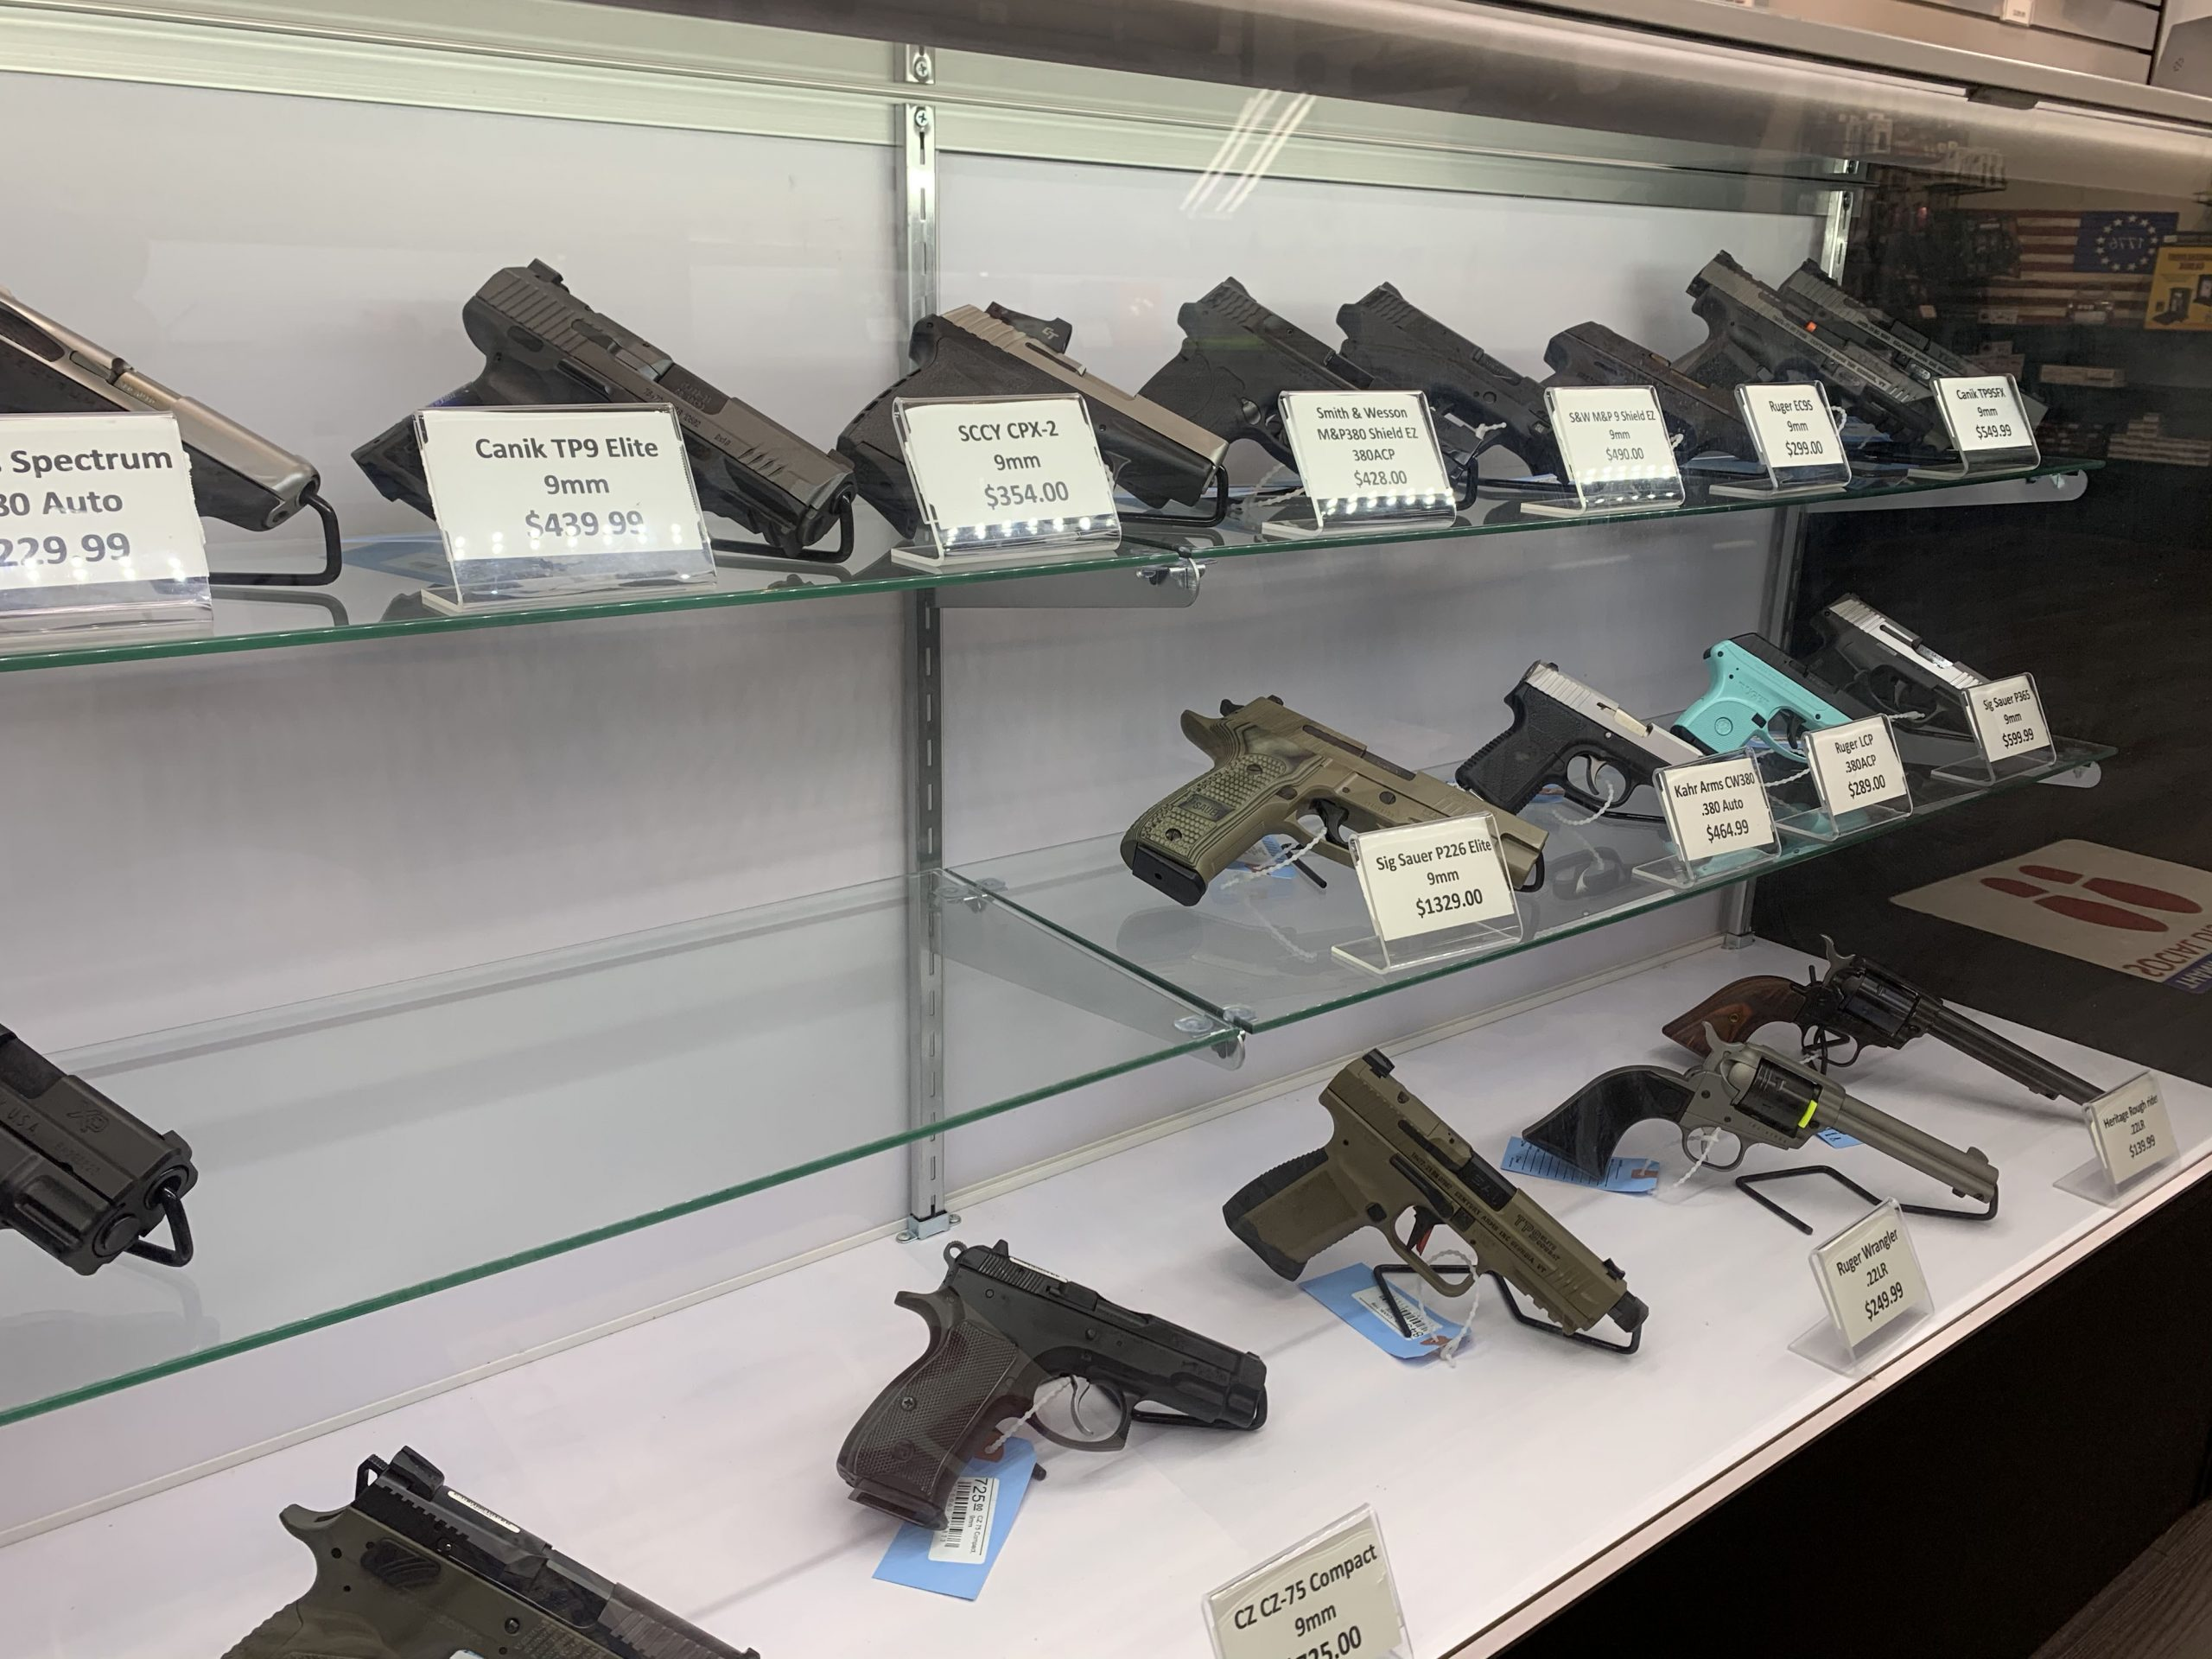 One of the several display cases with some of the handguns available for purchase at United Gun Shop in Rockville, Maryland, in April 2021. (Photo Credit: Jonathan Bennett)